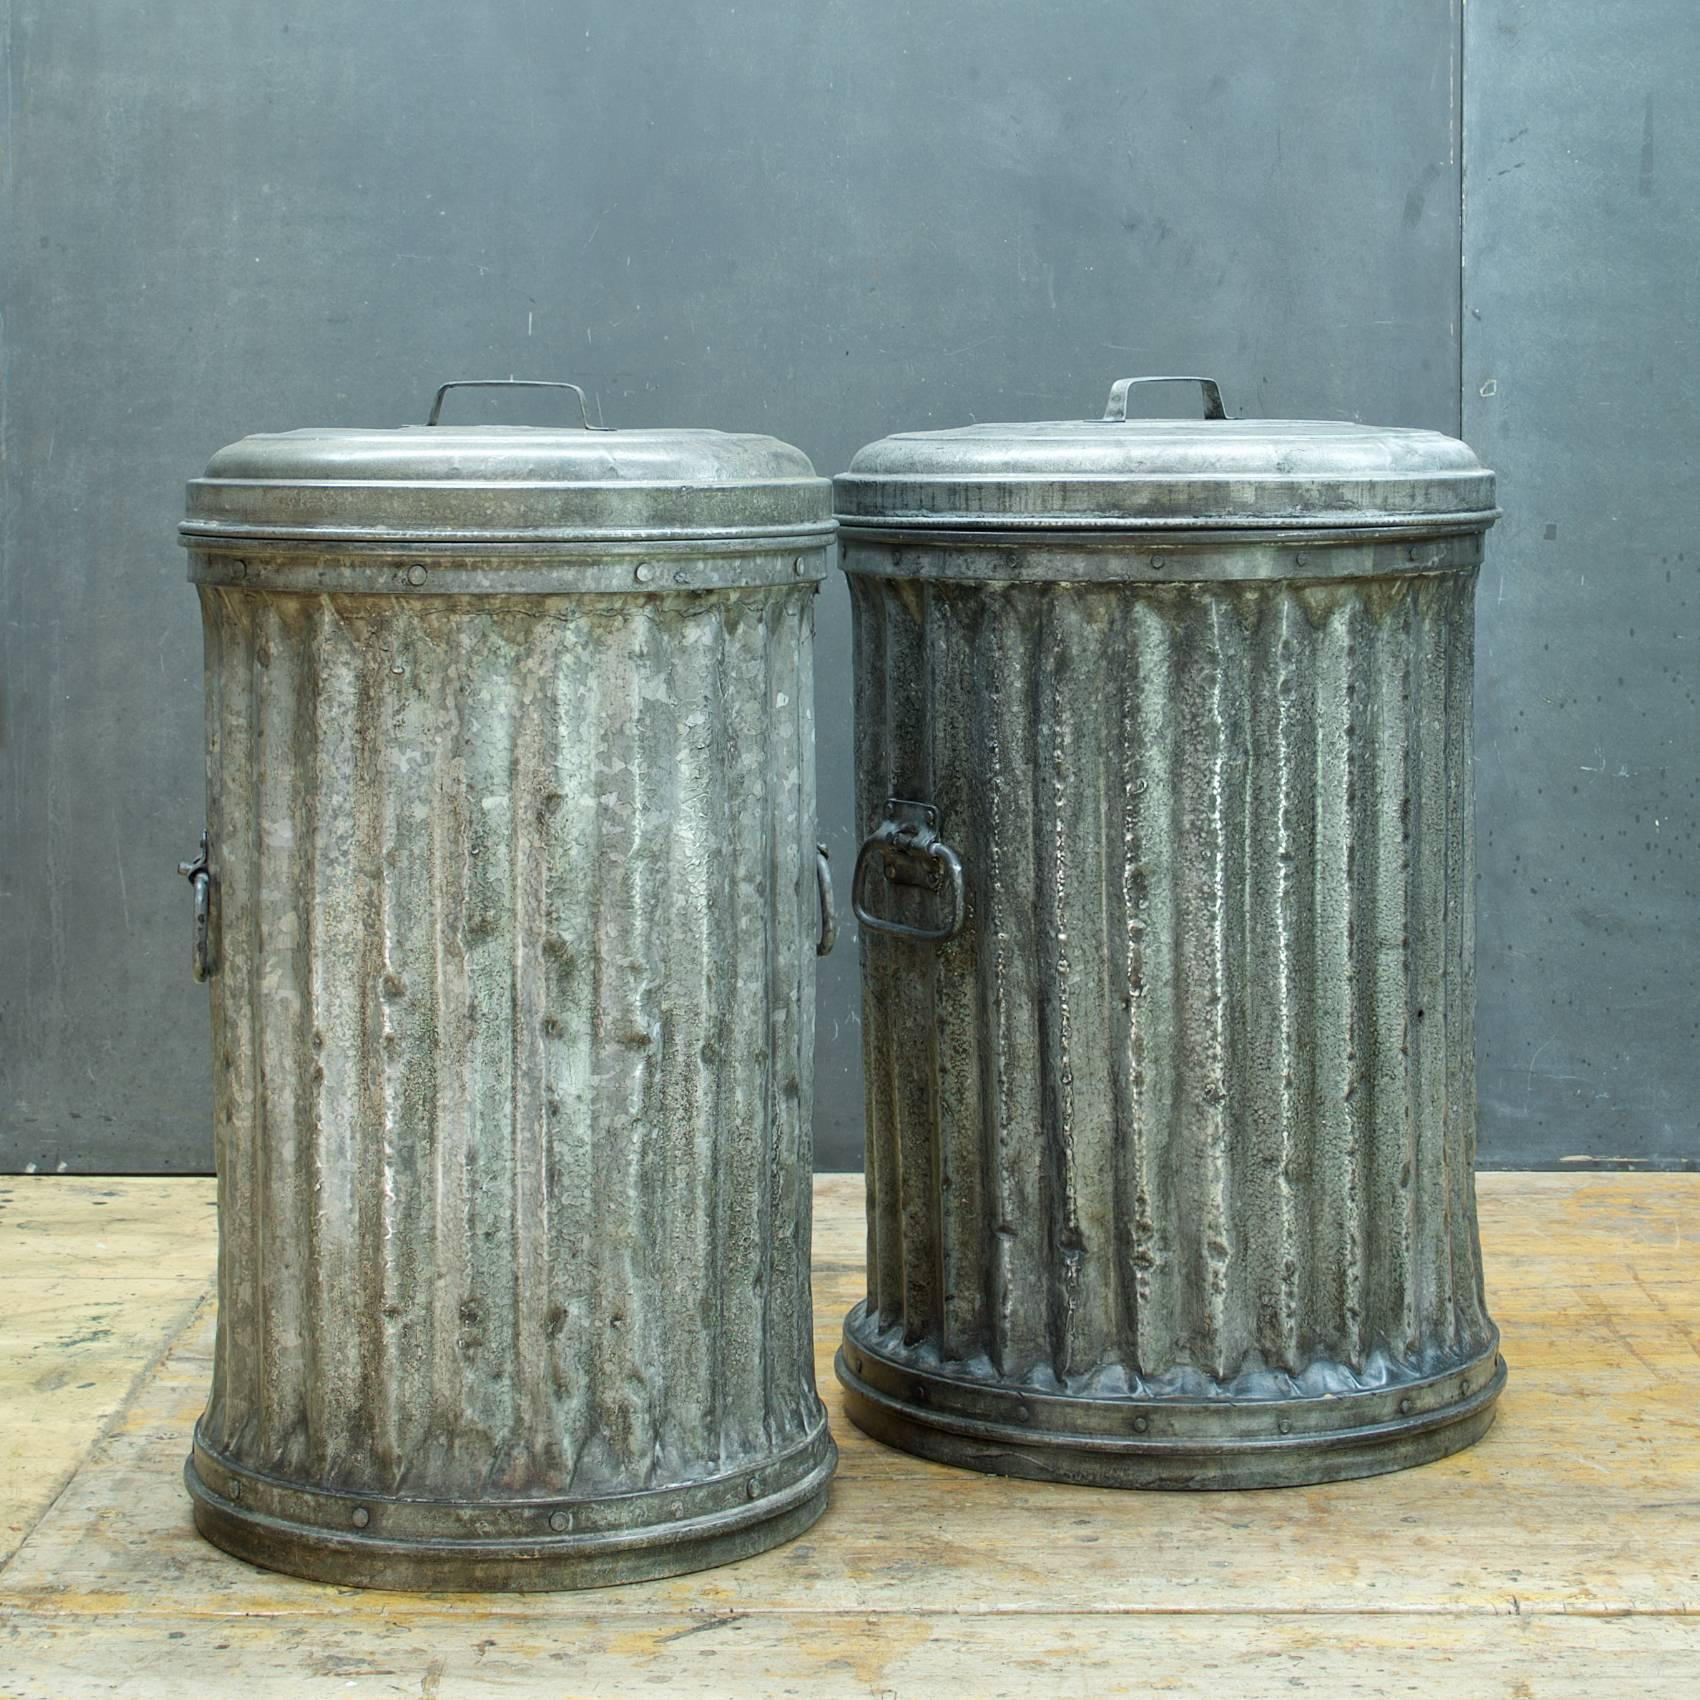 1950s Riveted Alley Trash Cans at 1stdibs